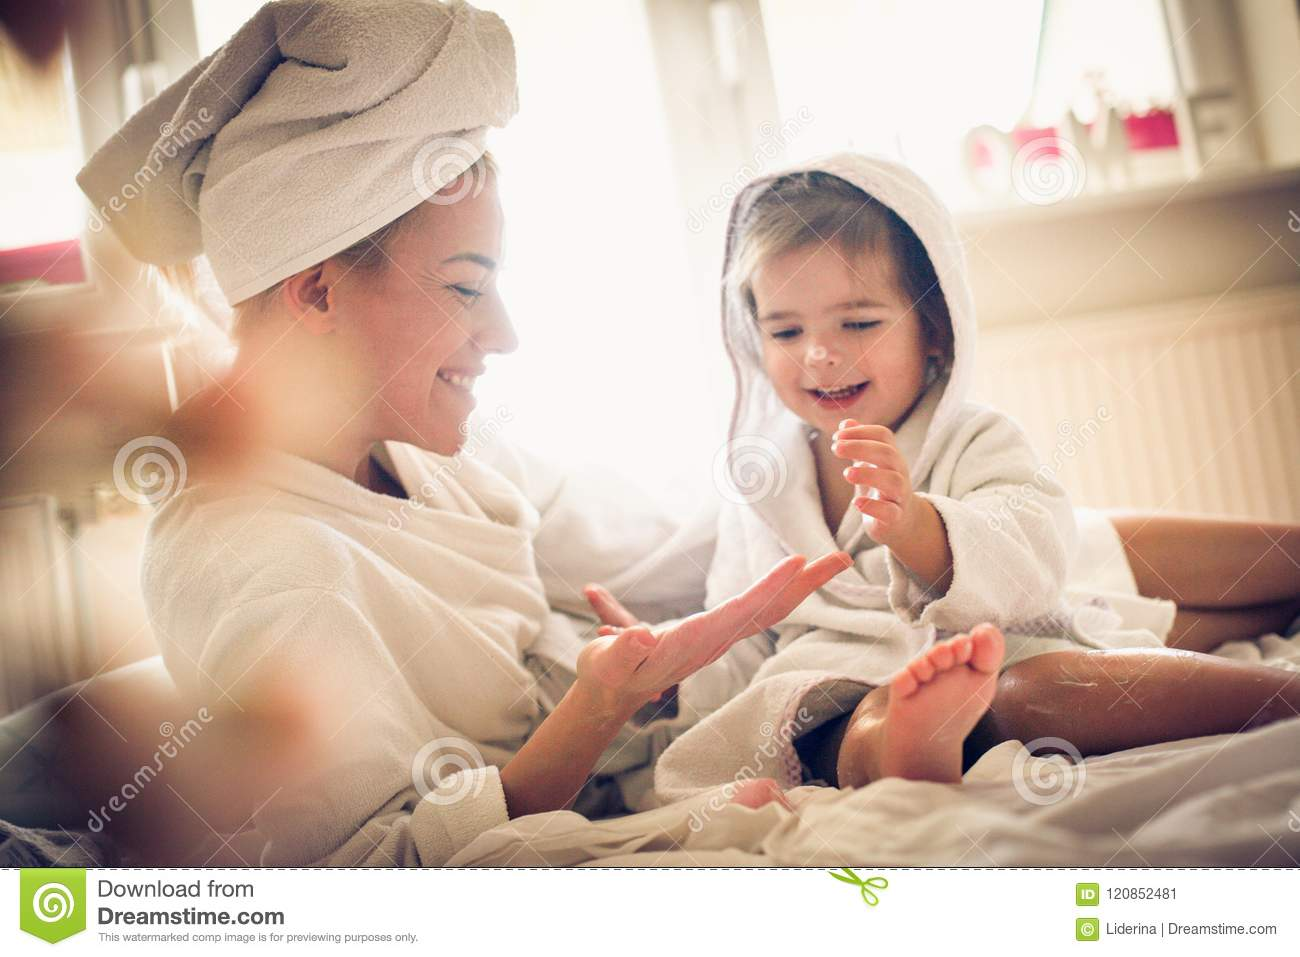 Body care is very important for girls. Mother and daughter.